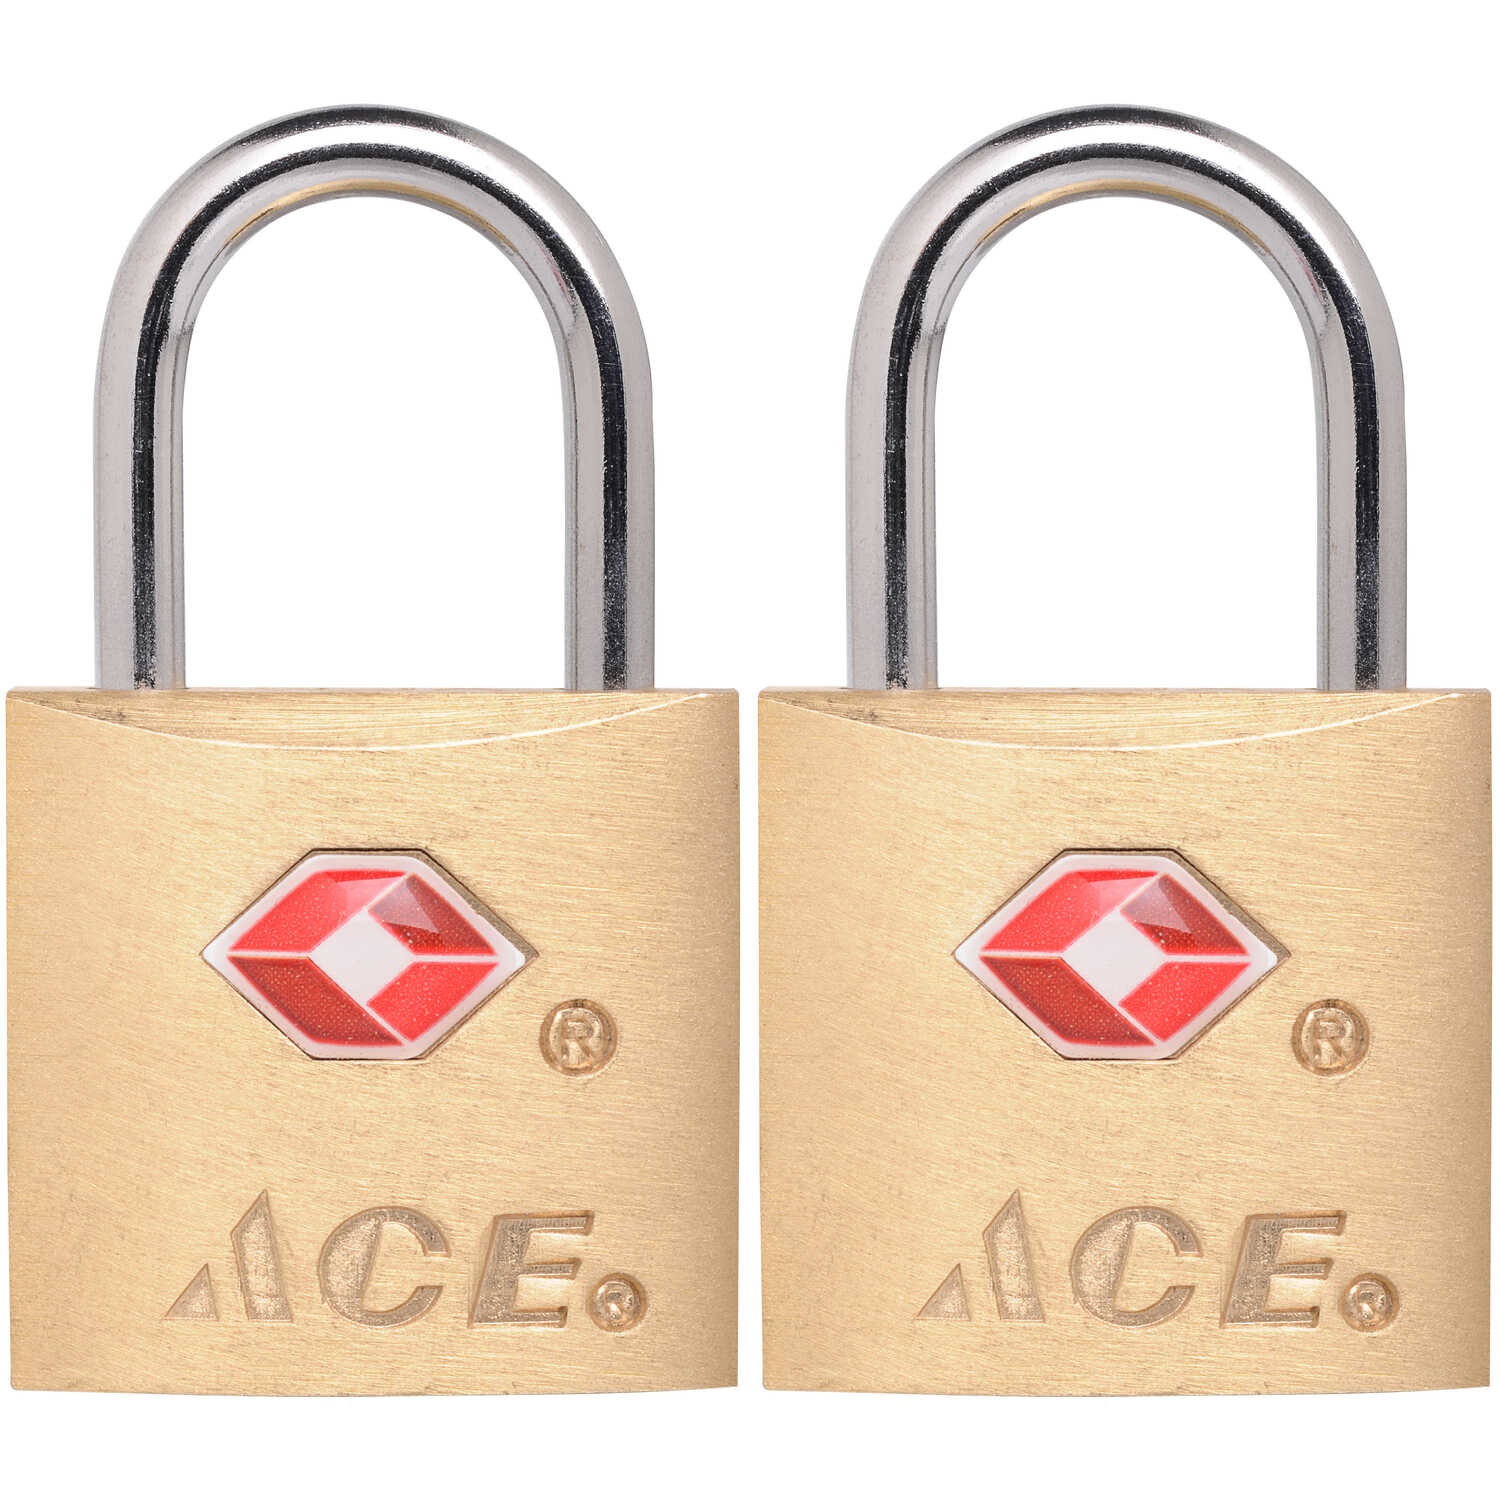 Ace  3/4 in. H x 7/8 in. W x 3/4 inch  L Brass  Single Locking  Luggage Lock  2 pk Keyed Alike